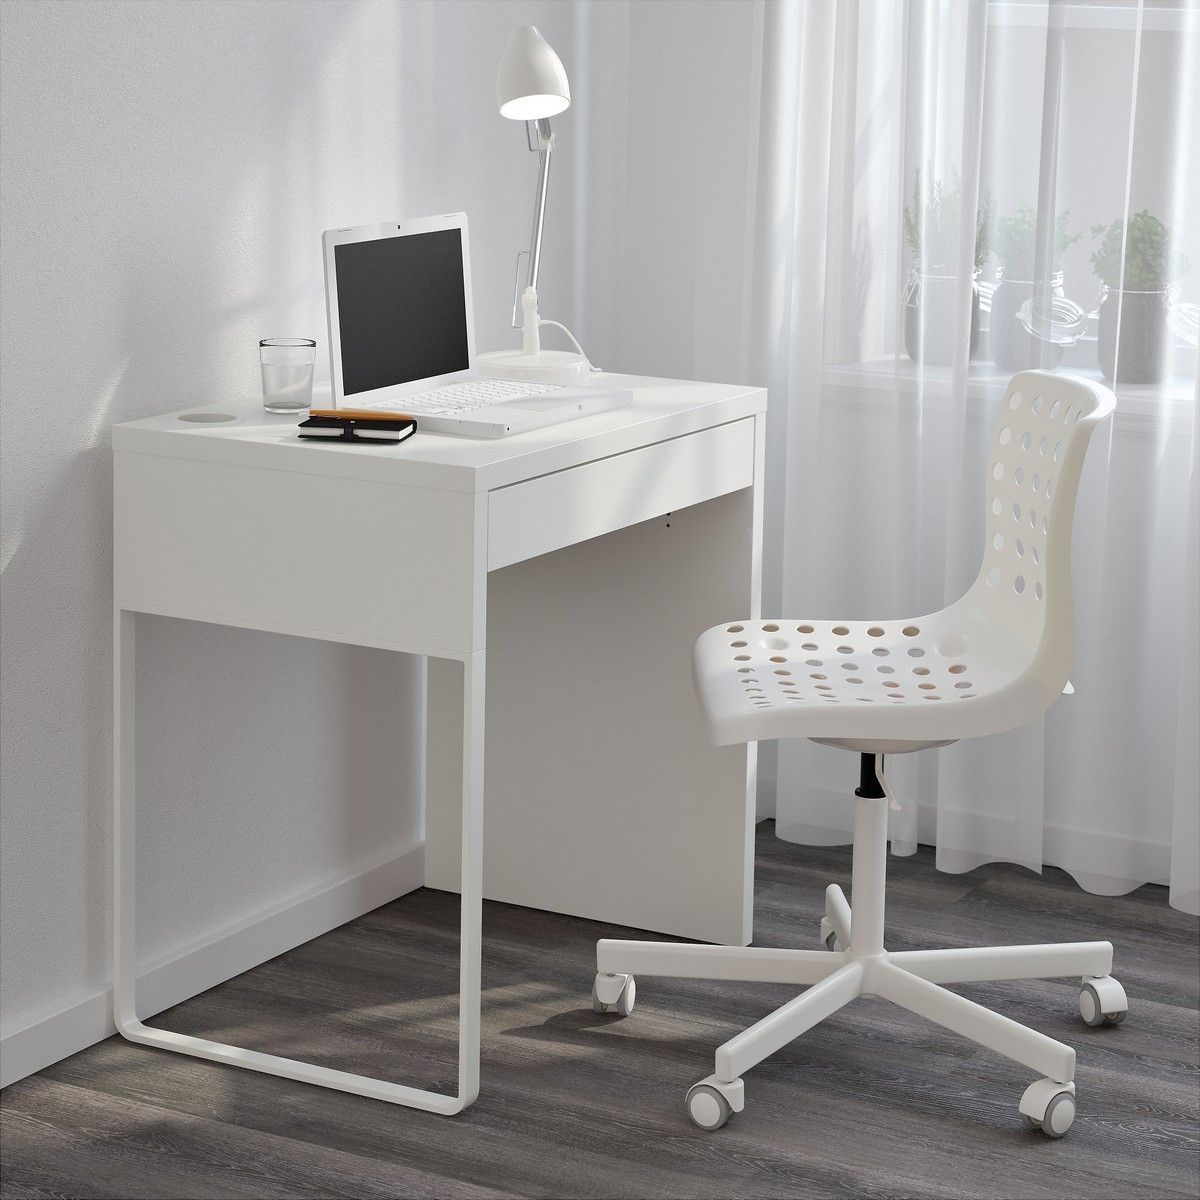 Desk Ideas Perfect For Small Spaces White Desk Bedroom Ikea